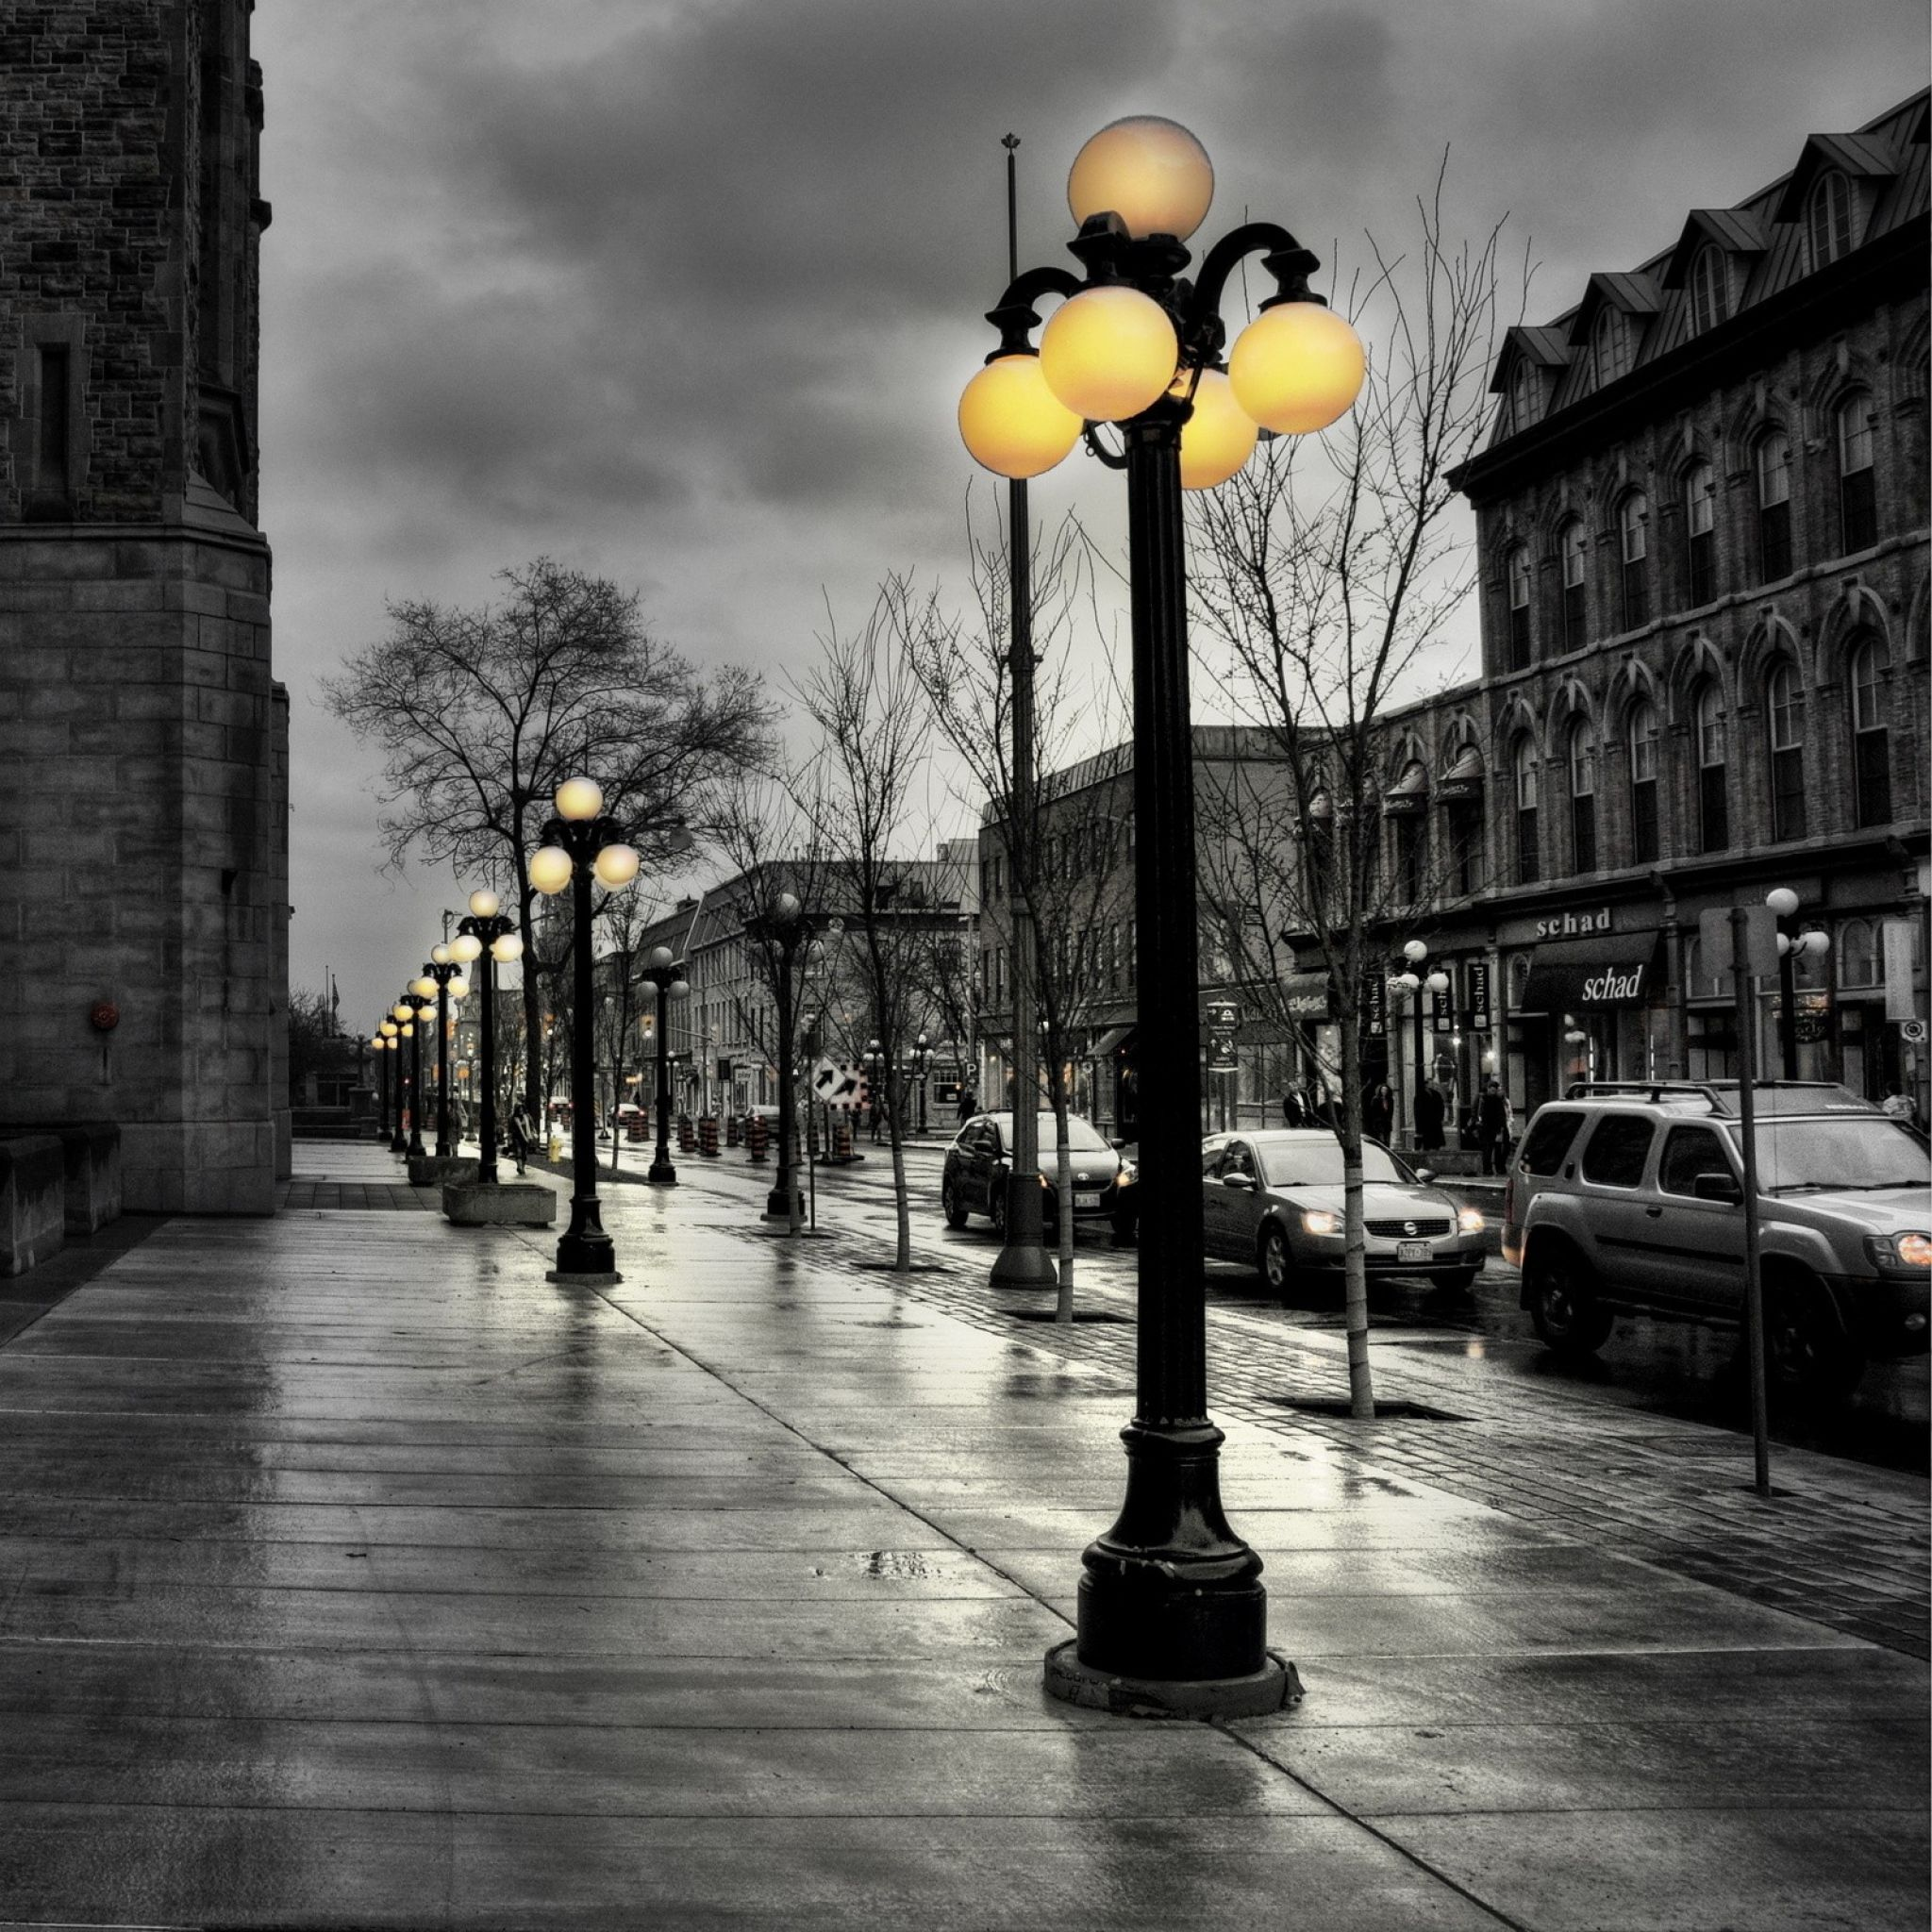 Rainy Day Wallpaper: 2048x2048 Wallpaper Street, City, Evening, Black White